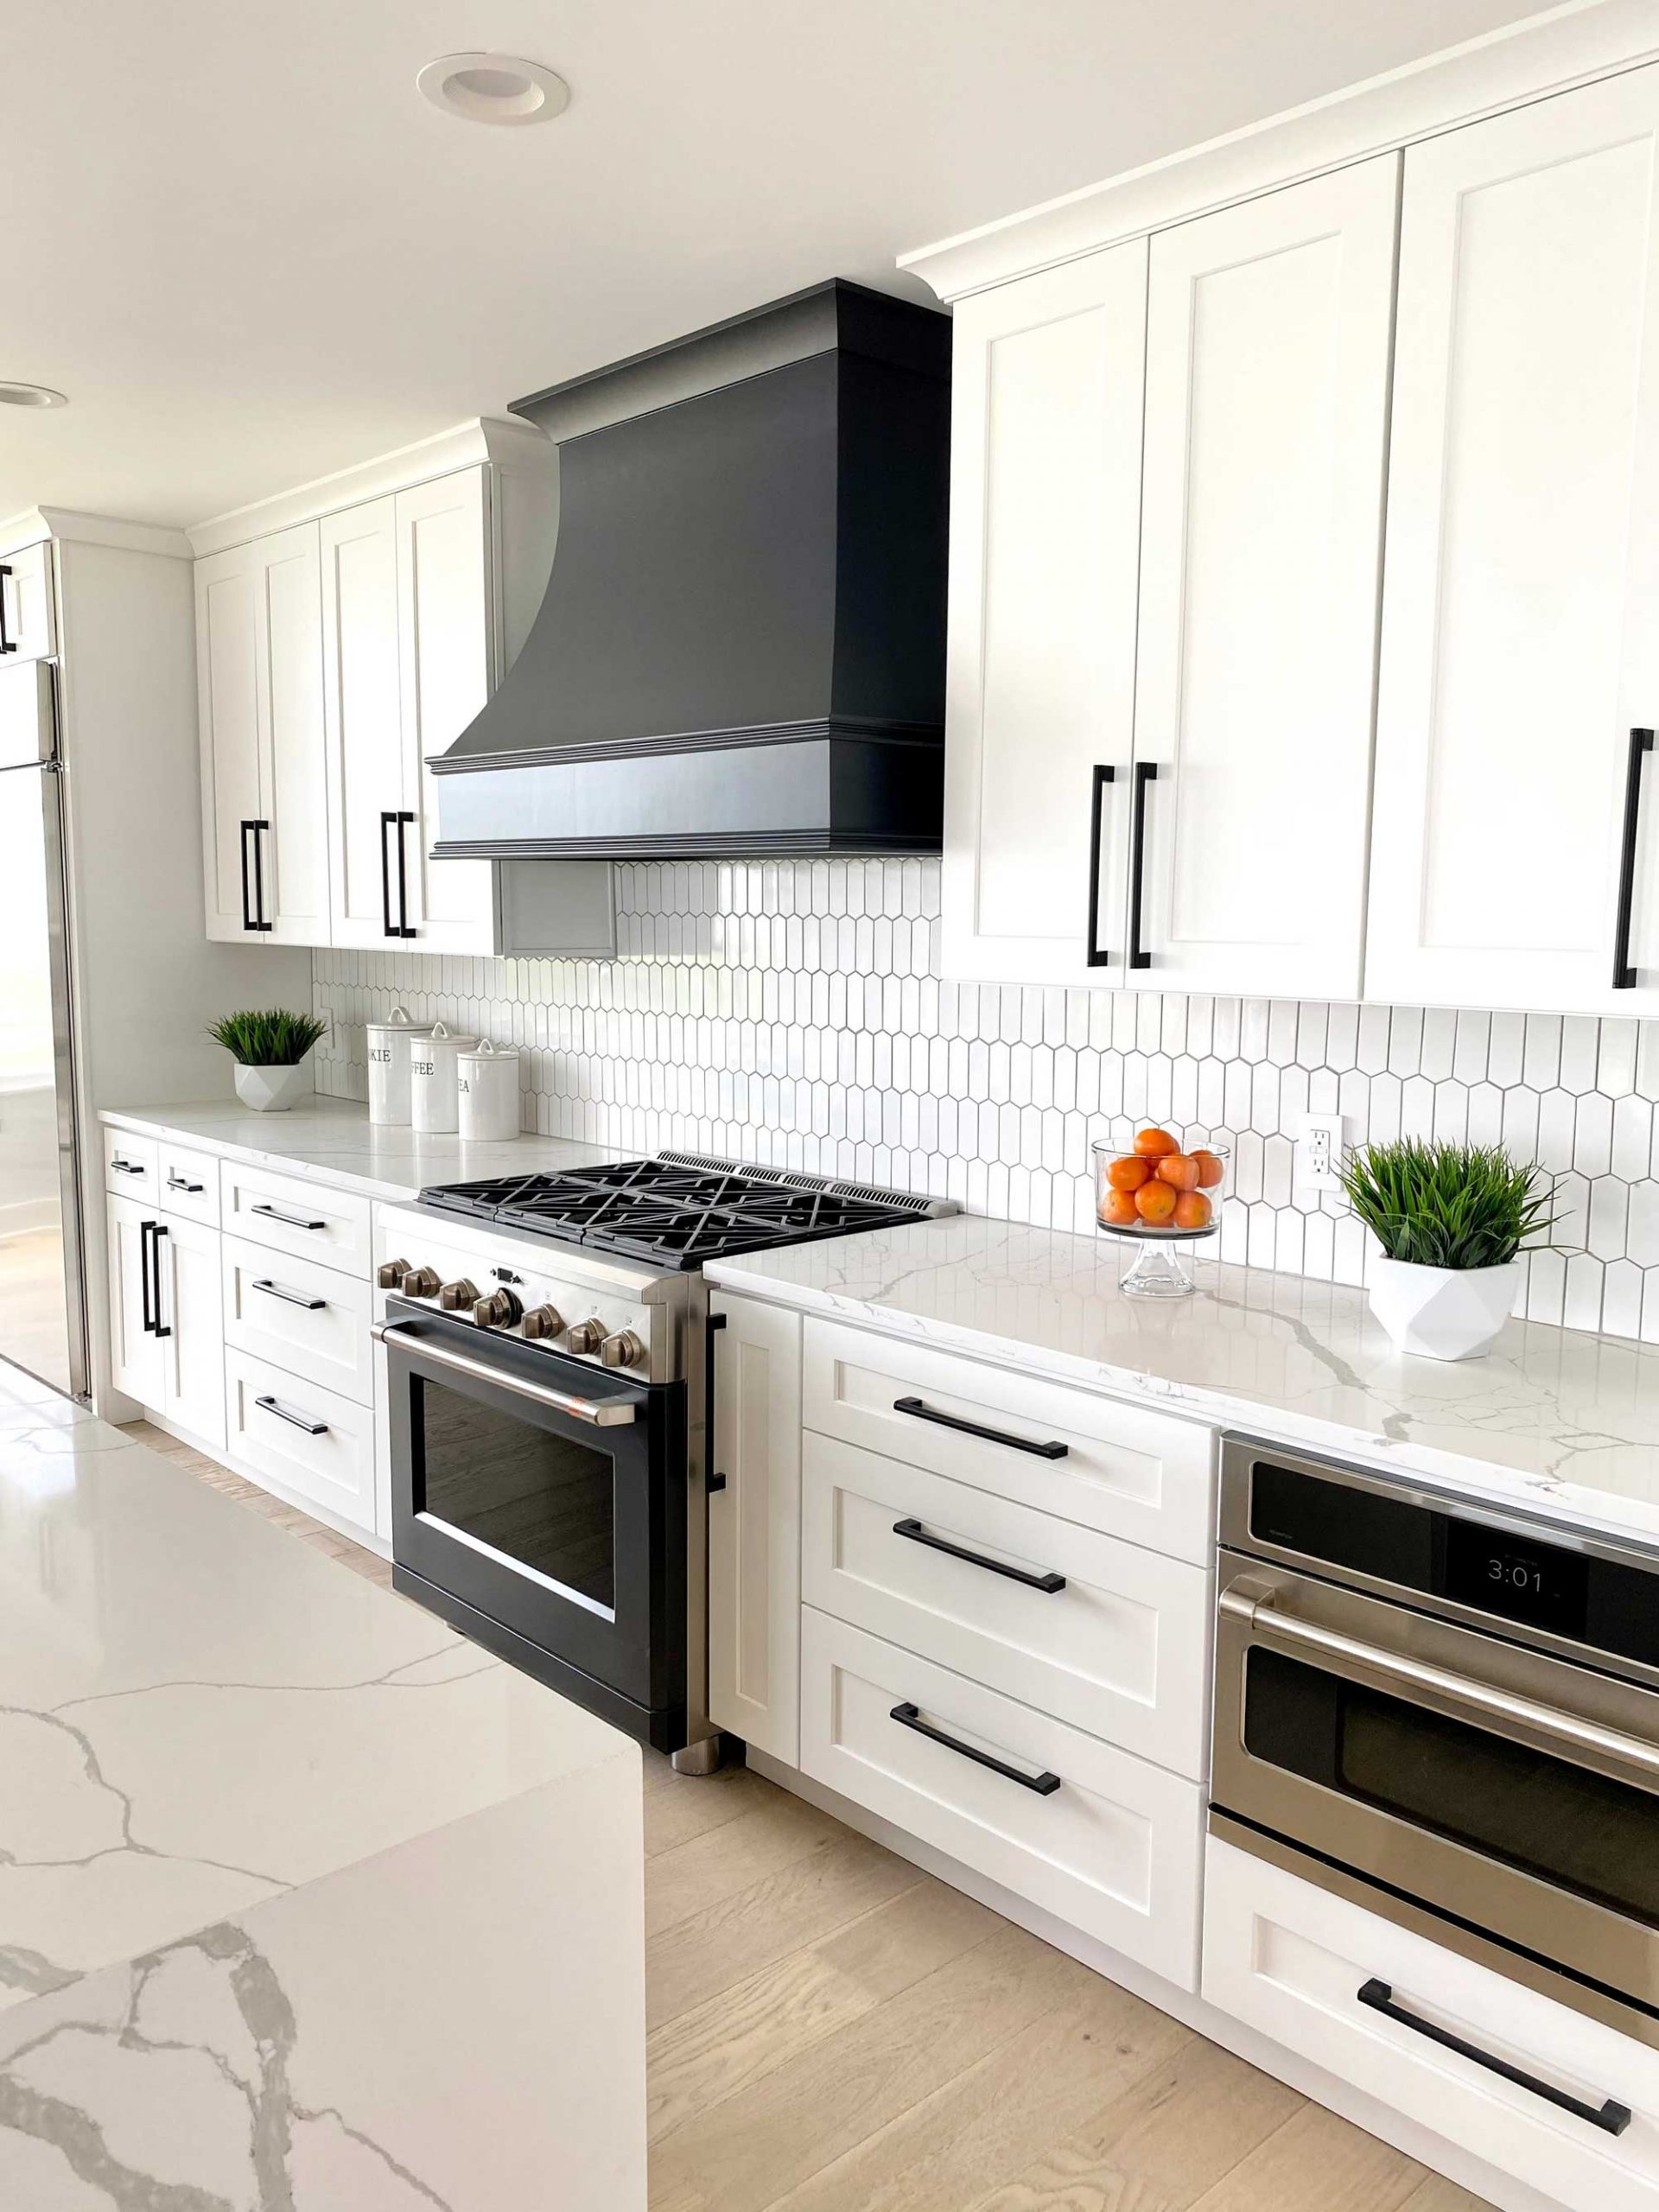 White Cabinets with Black hardware installed in kitchen by Cleveland Cabinets